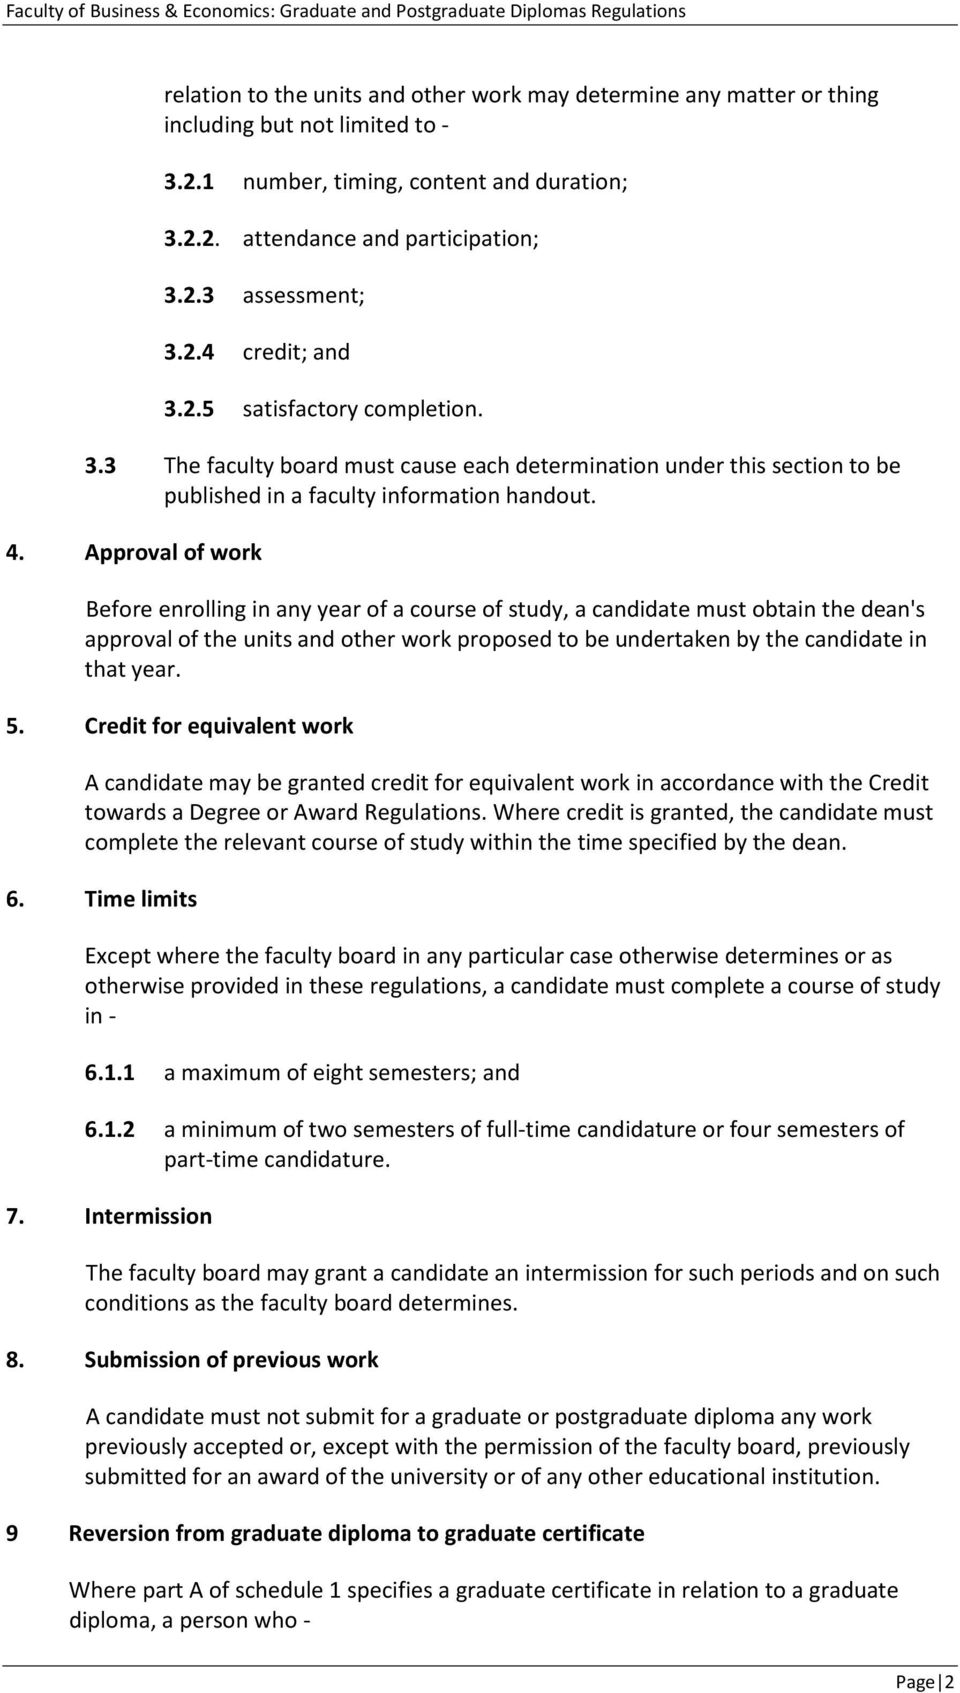 Approval of work Before enrolling in any year of a course of study, a candidate must obtain the dean's approval of the units and other work proposed to be undertaken by the candidate in that year. 5.